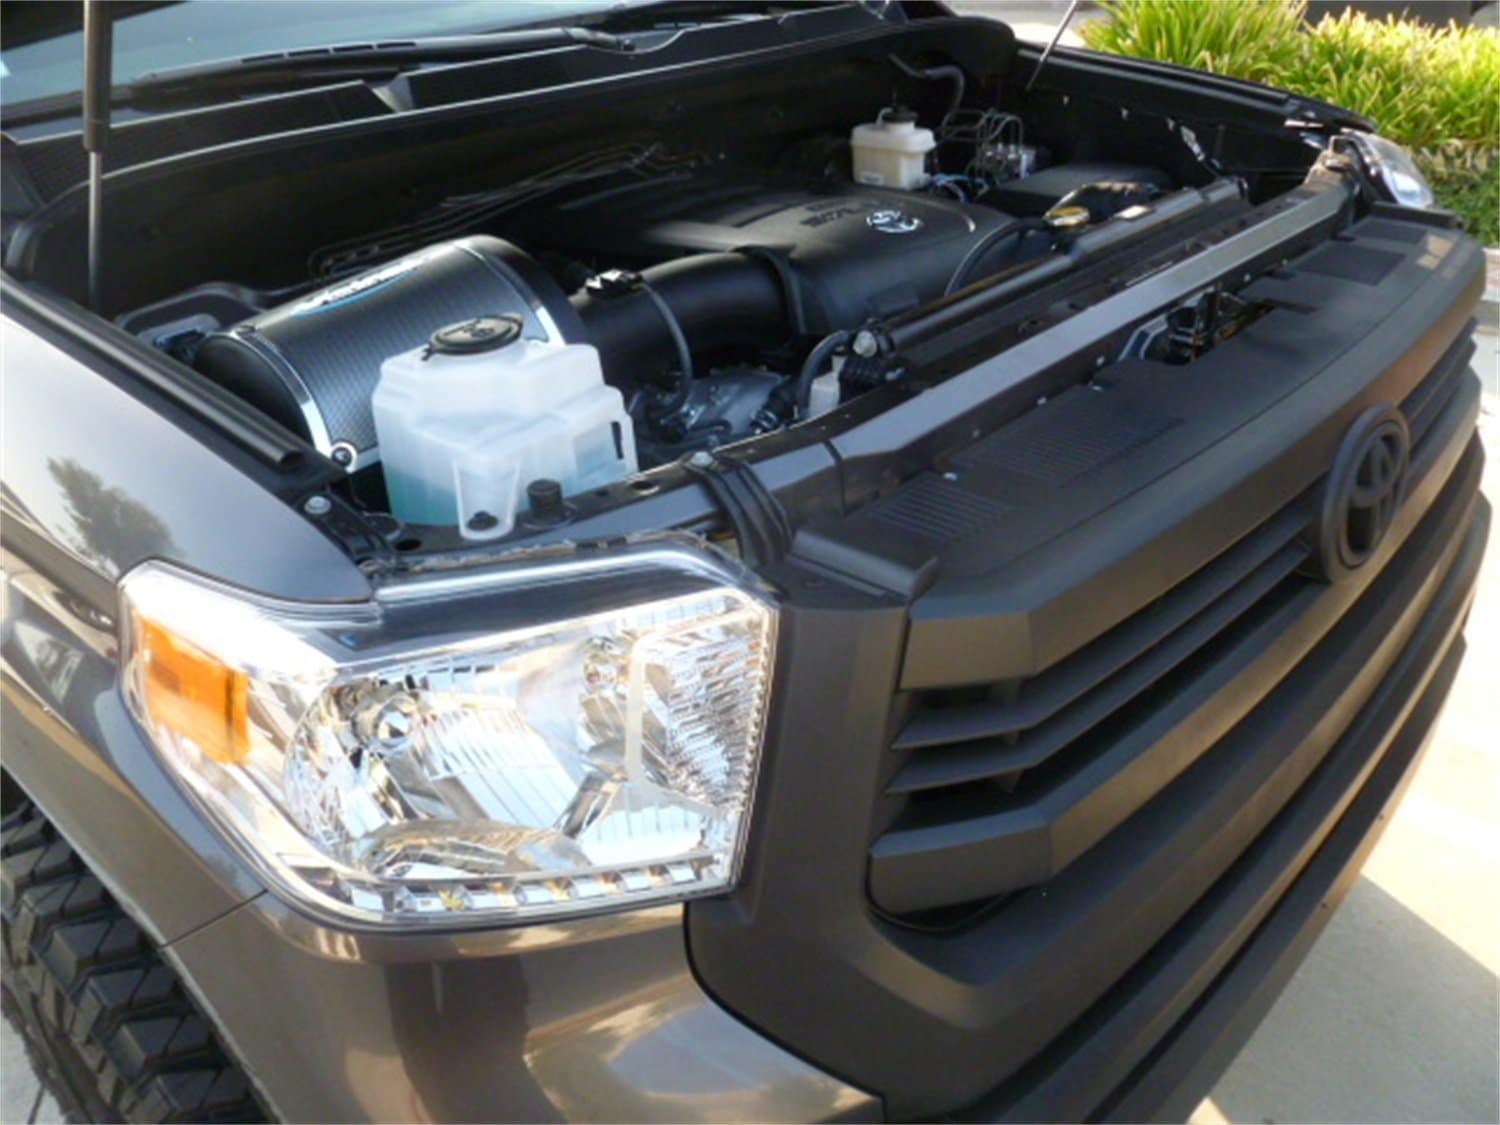 Best Cold Air Intake System Tundra / Sequoia 5.7L ...